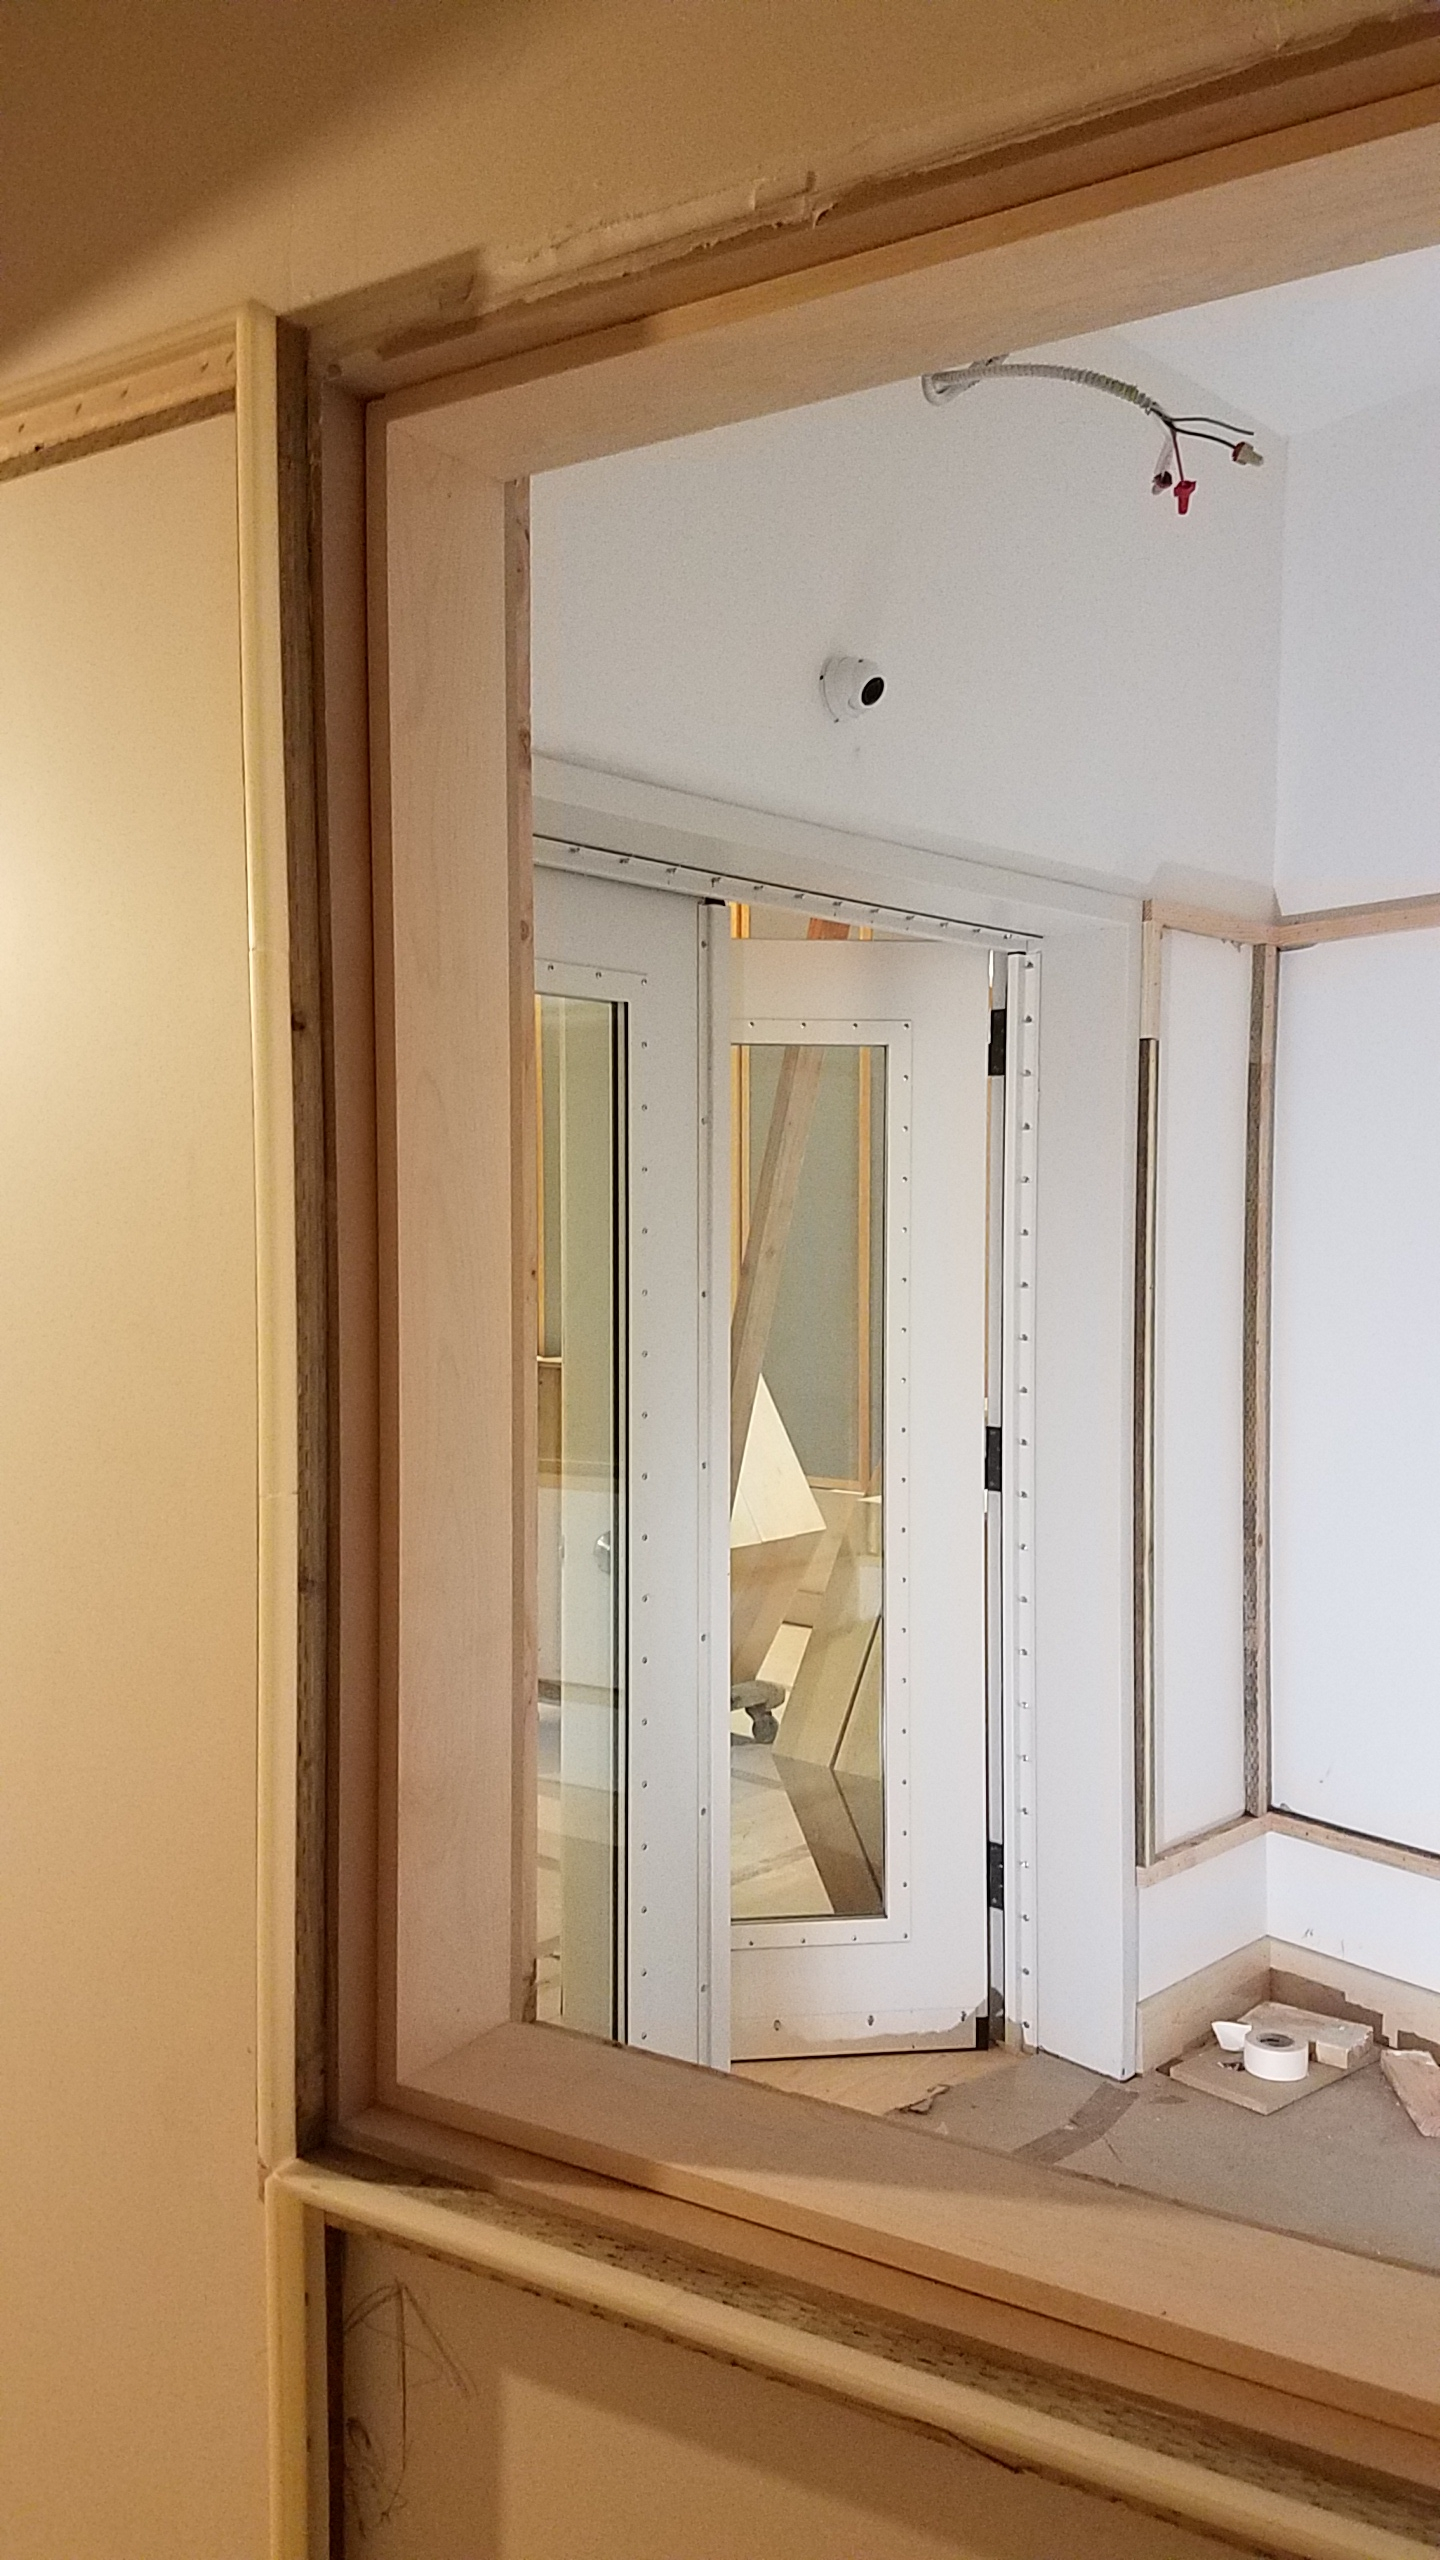 Maple window stops were installed in the openings between the three booths in tracking room 1.